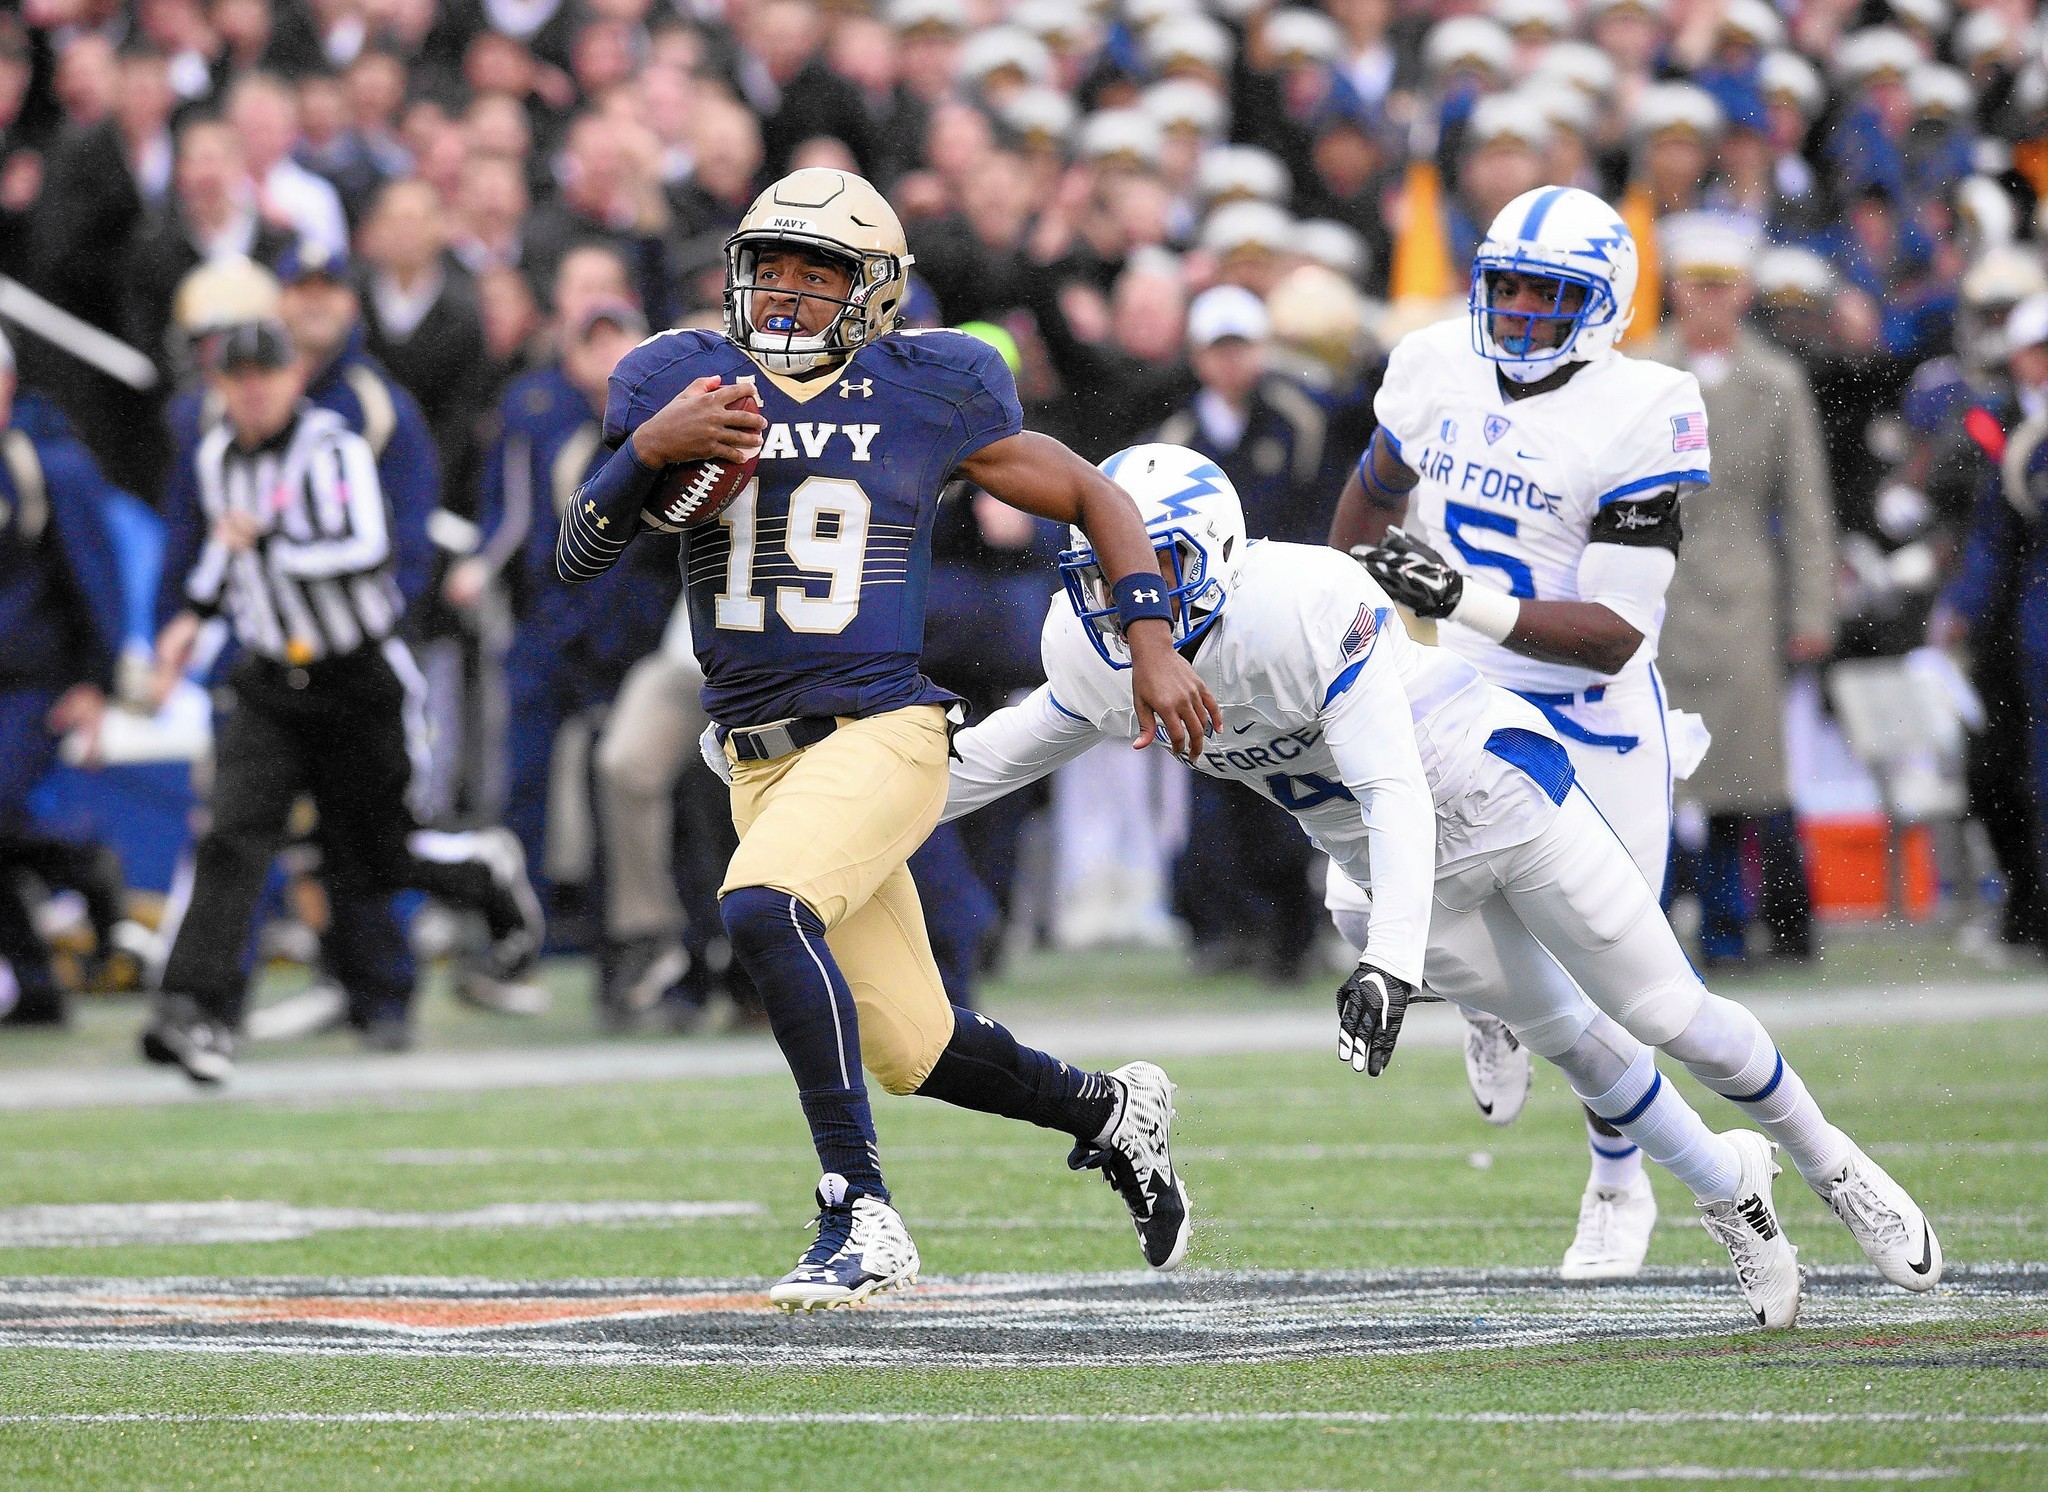 57c7b2e6b16 Navy now formally promoting Keenan Reynolds for Heisman Trophy ...